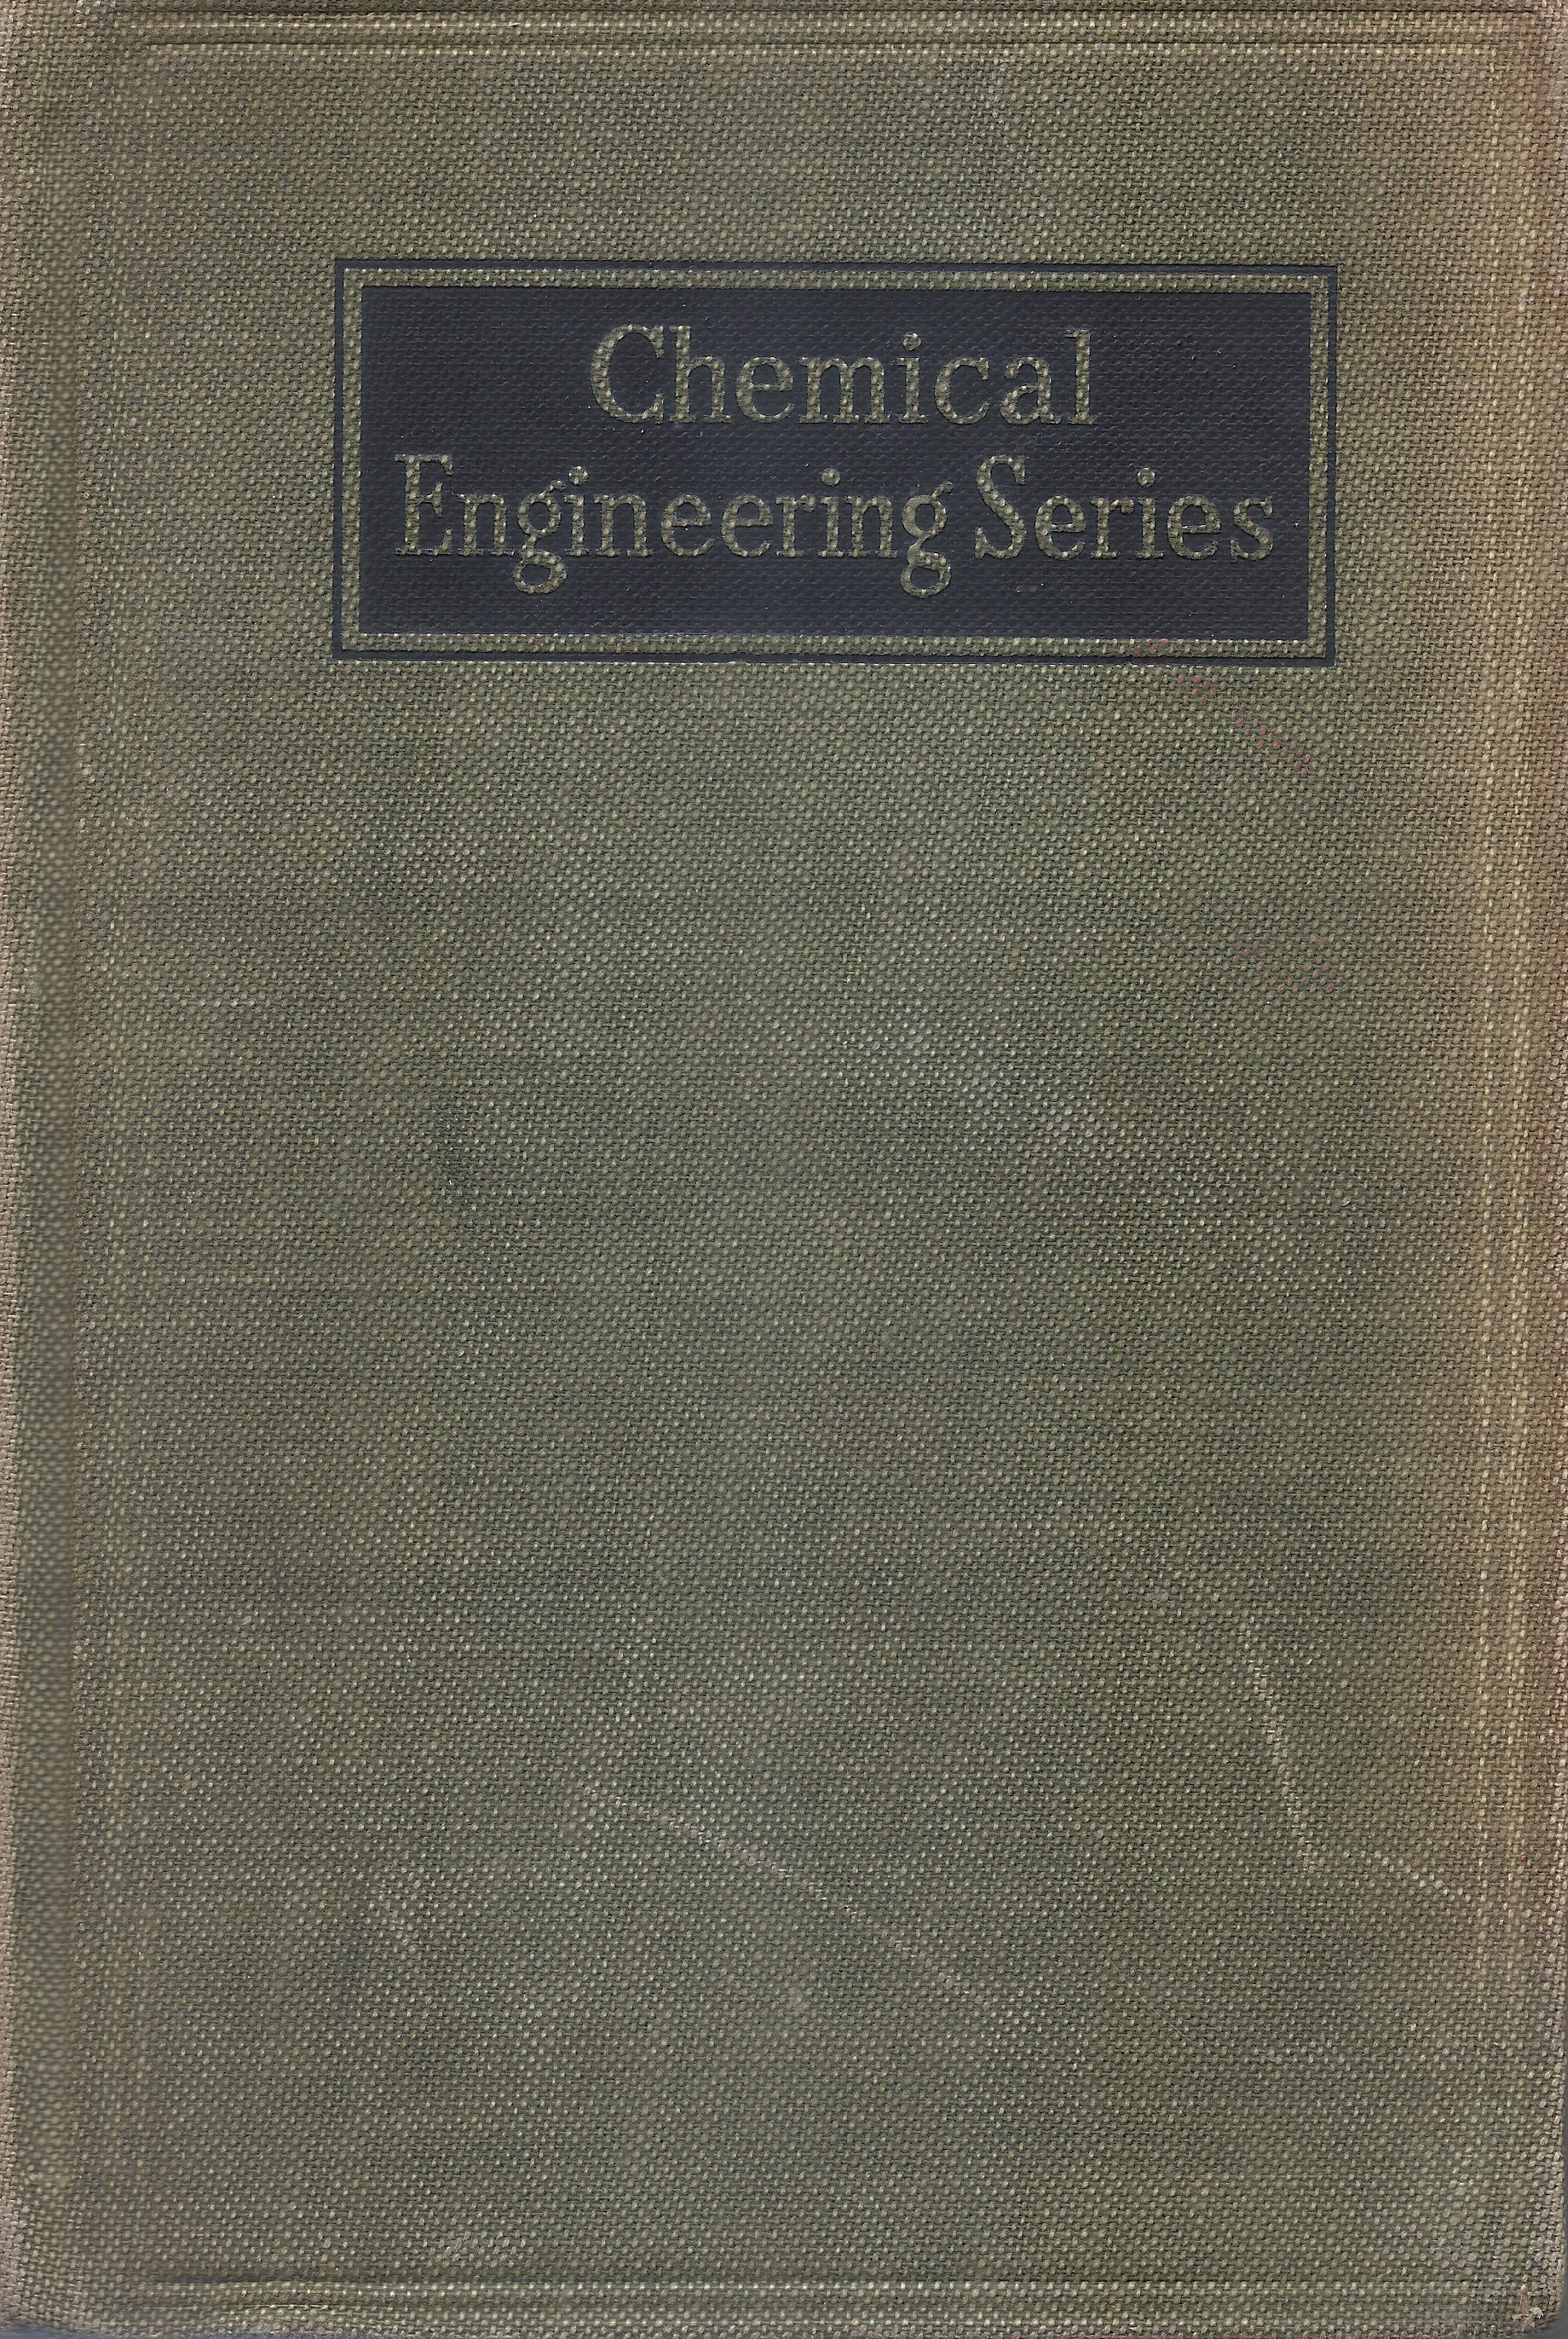 Introduction To Nuclear Engineering (Chemical Engineering Series)